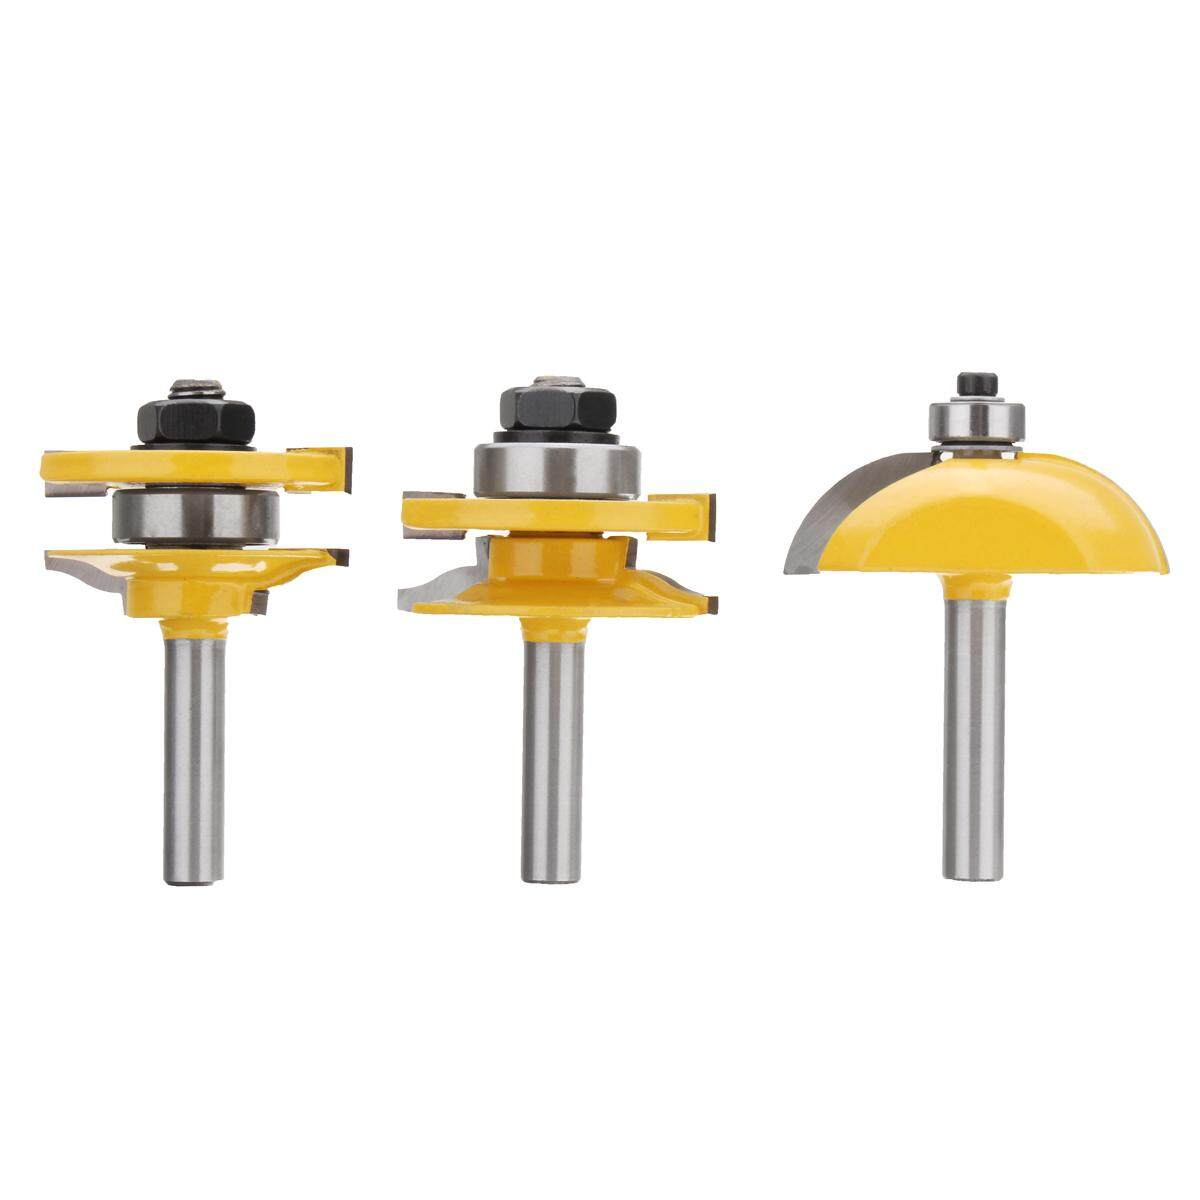 3PCS 8mm Shank Raised Panel Router Bit Set Cabinet Door Woodworking Cutter Kit